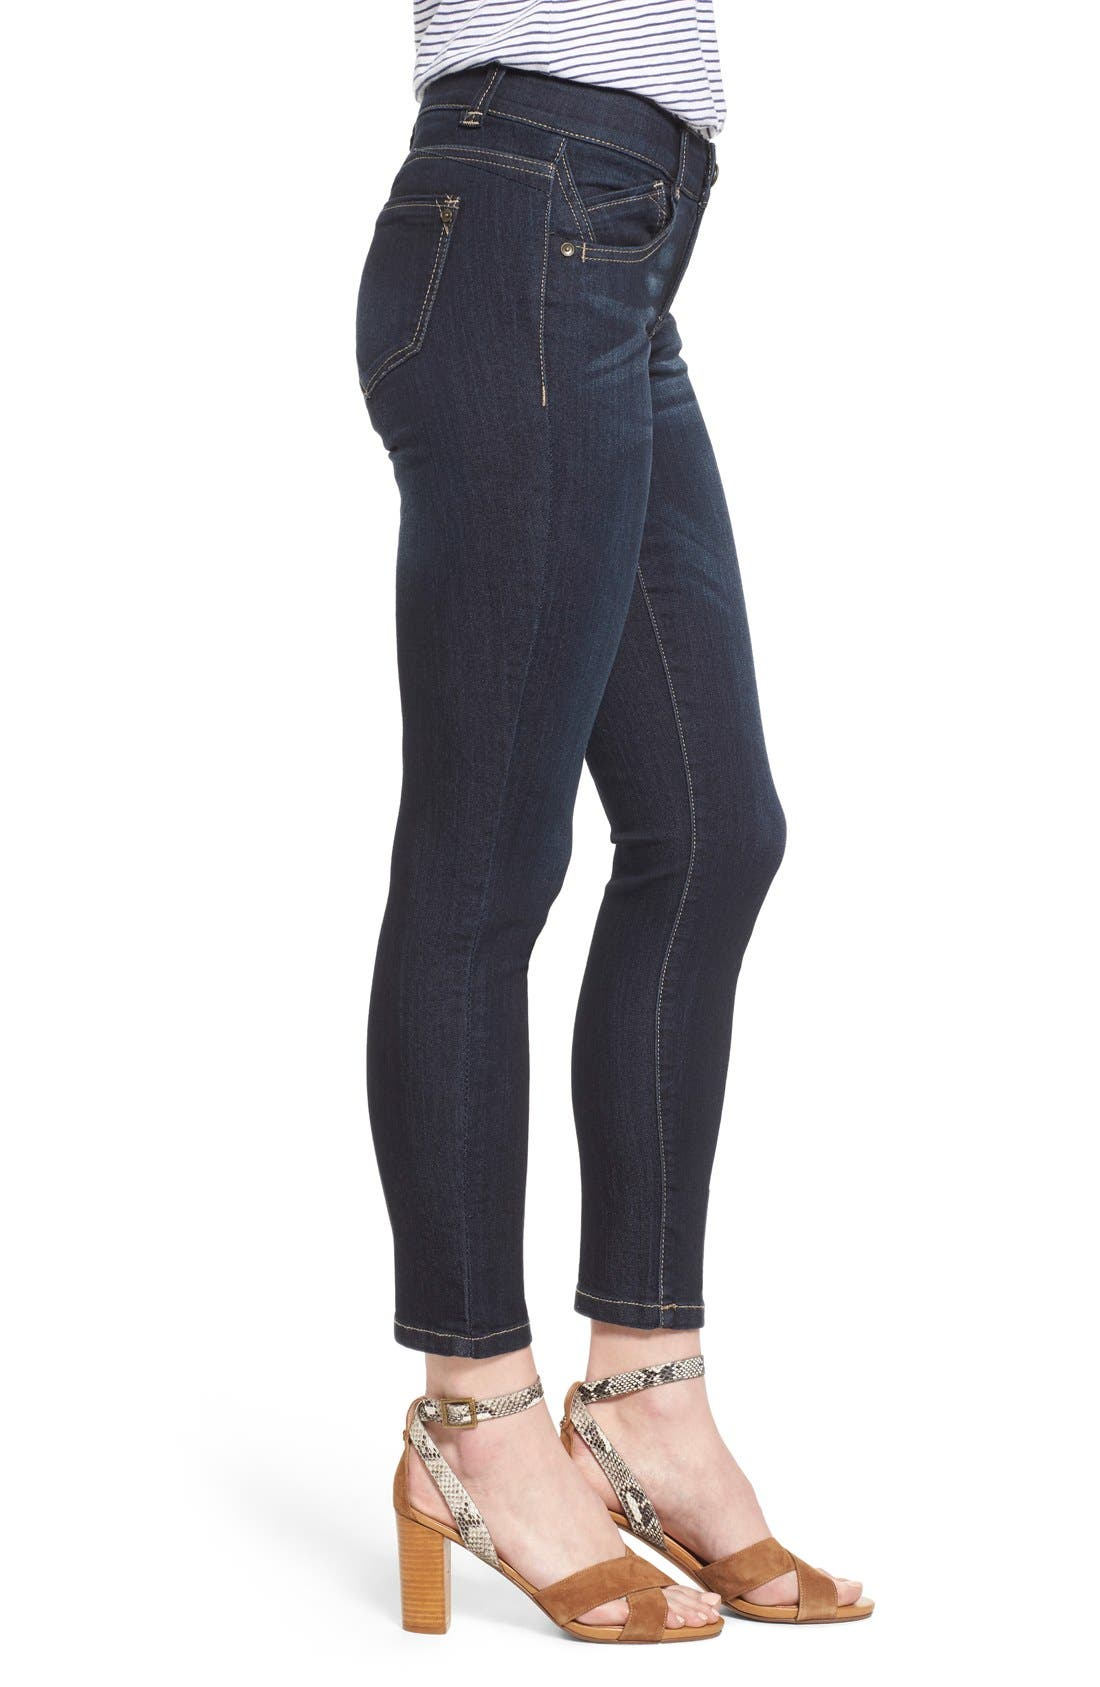 Alternate Image 3  - Wit & Wisdom 'Ab Solution' Stretch Ankle Skinny Jeans (Regular & Petite) (Nordstrom Exclusive)